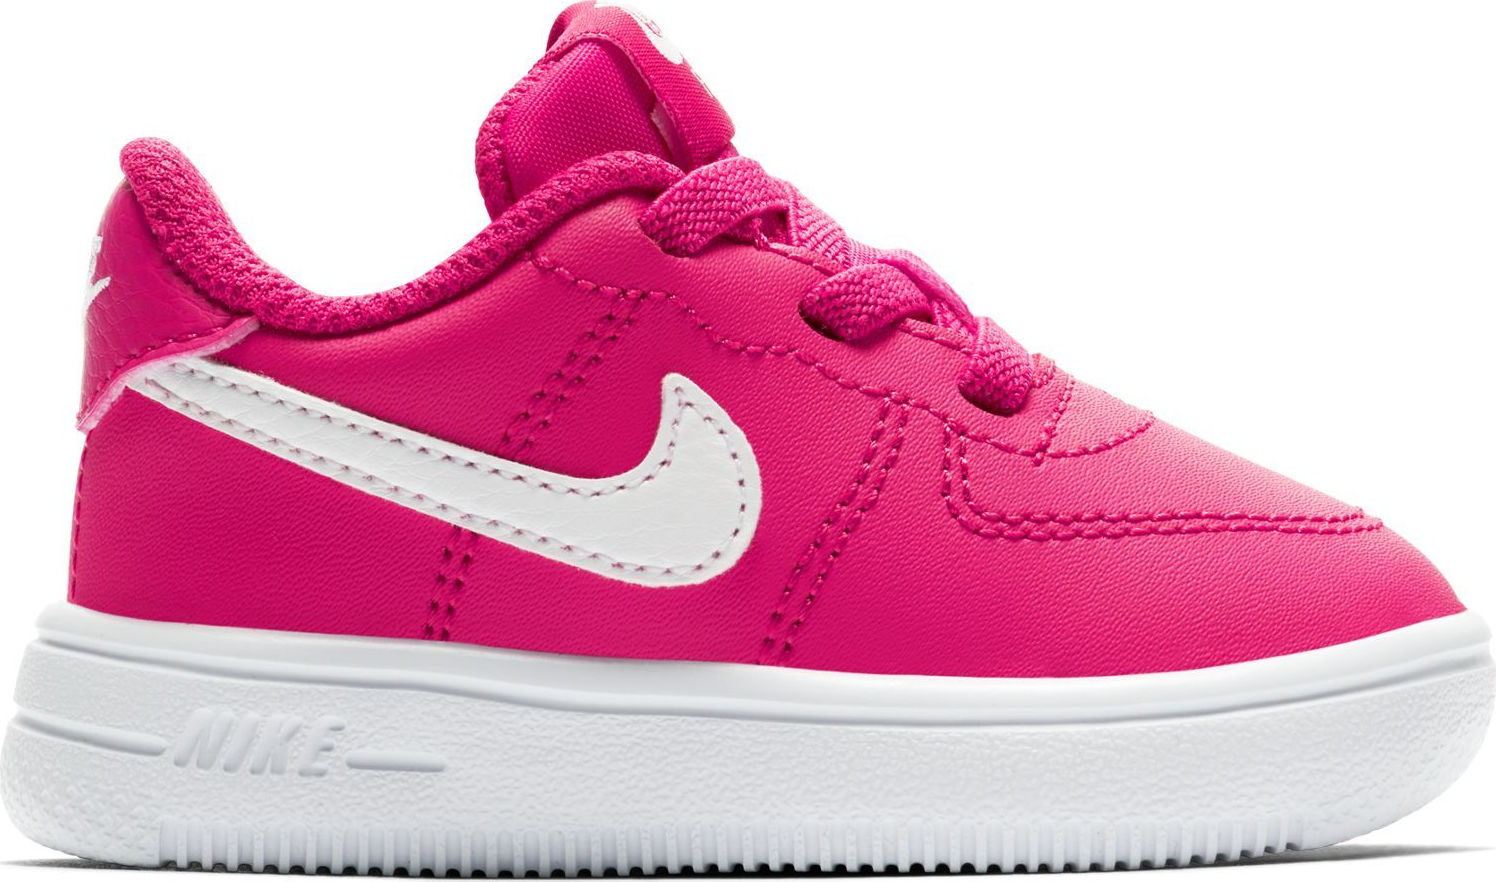 Nike Air Force One (Soft Sole) Rush Pink-White